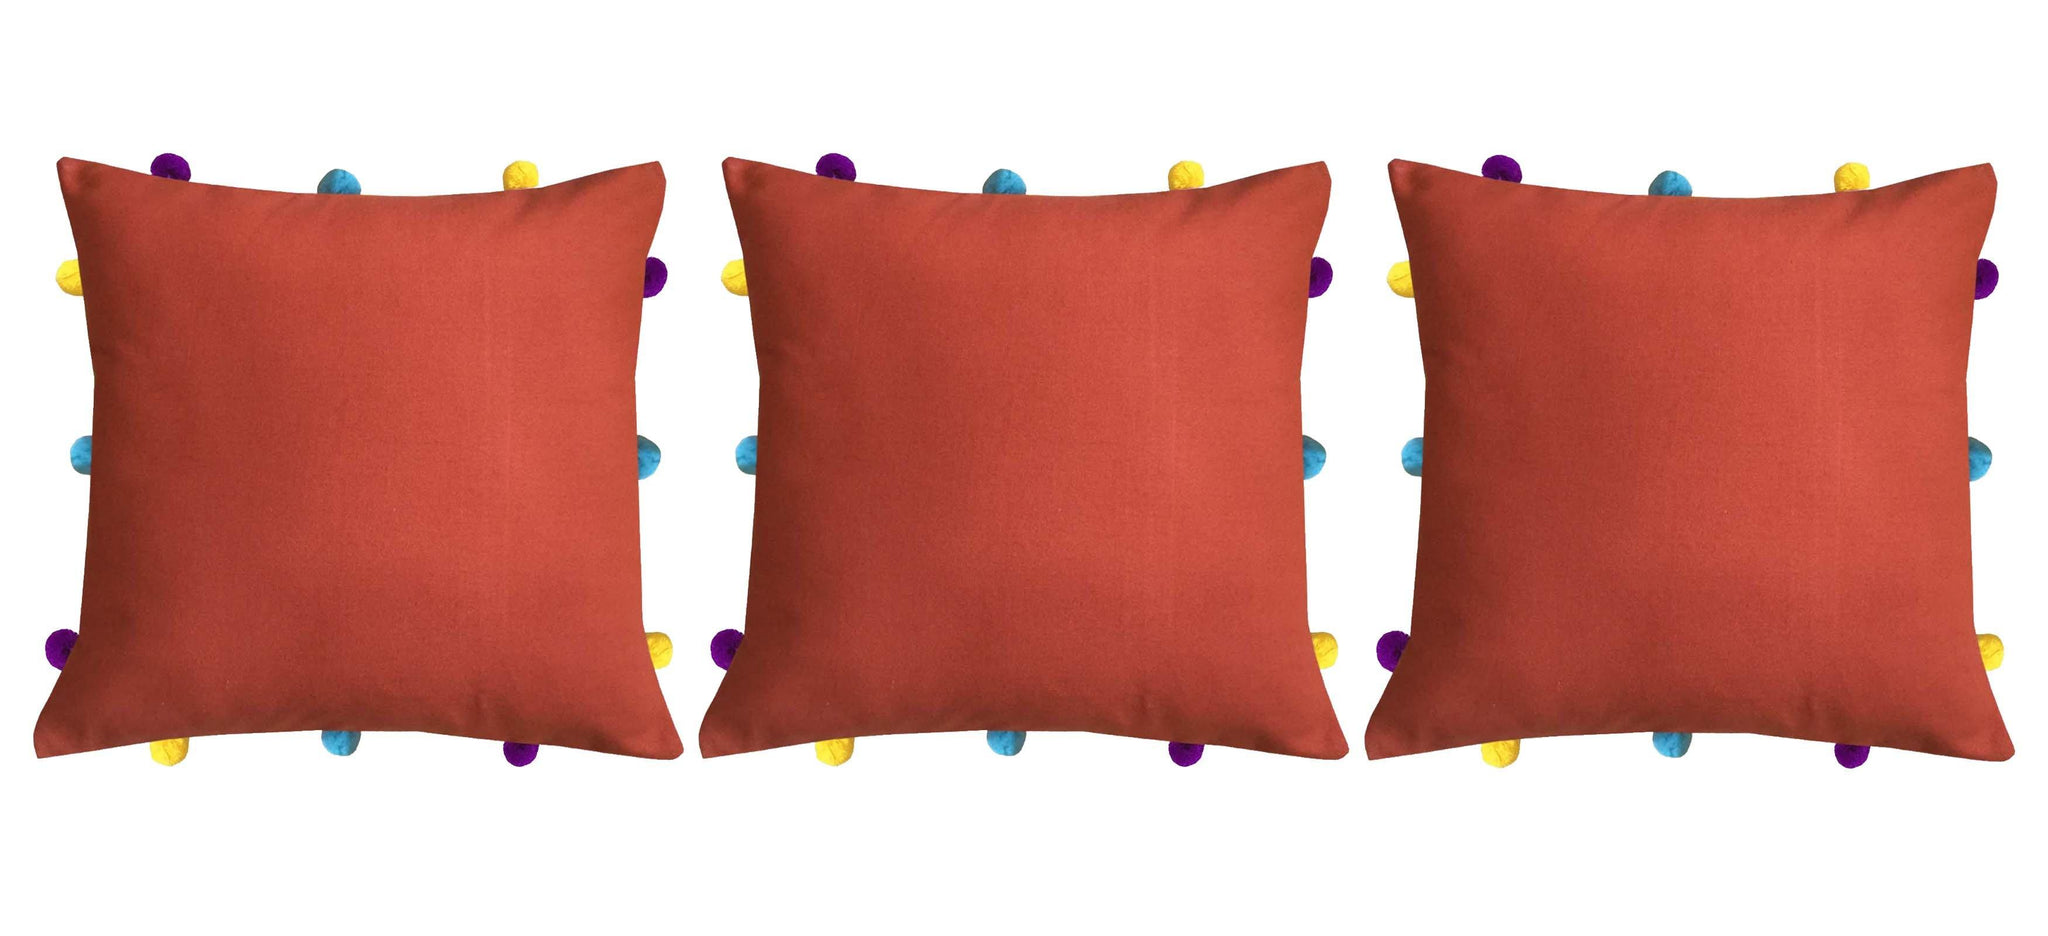 "Lushomes Red Wood Cushion Cover with Colorful pom poms (3 pcs, 12 x 12"") - Lushomes"